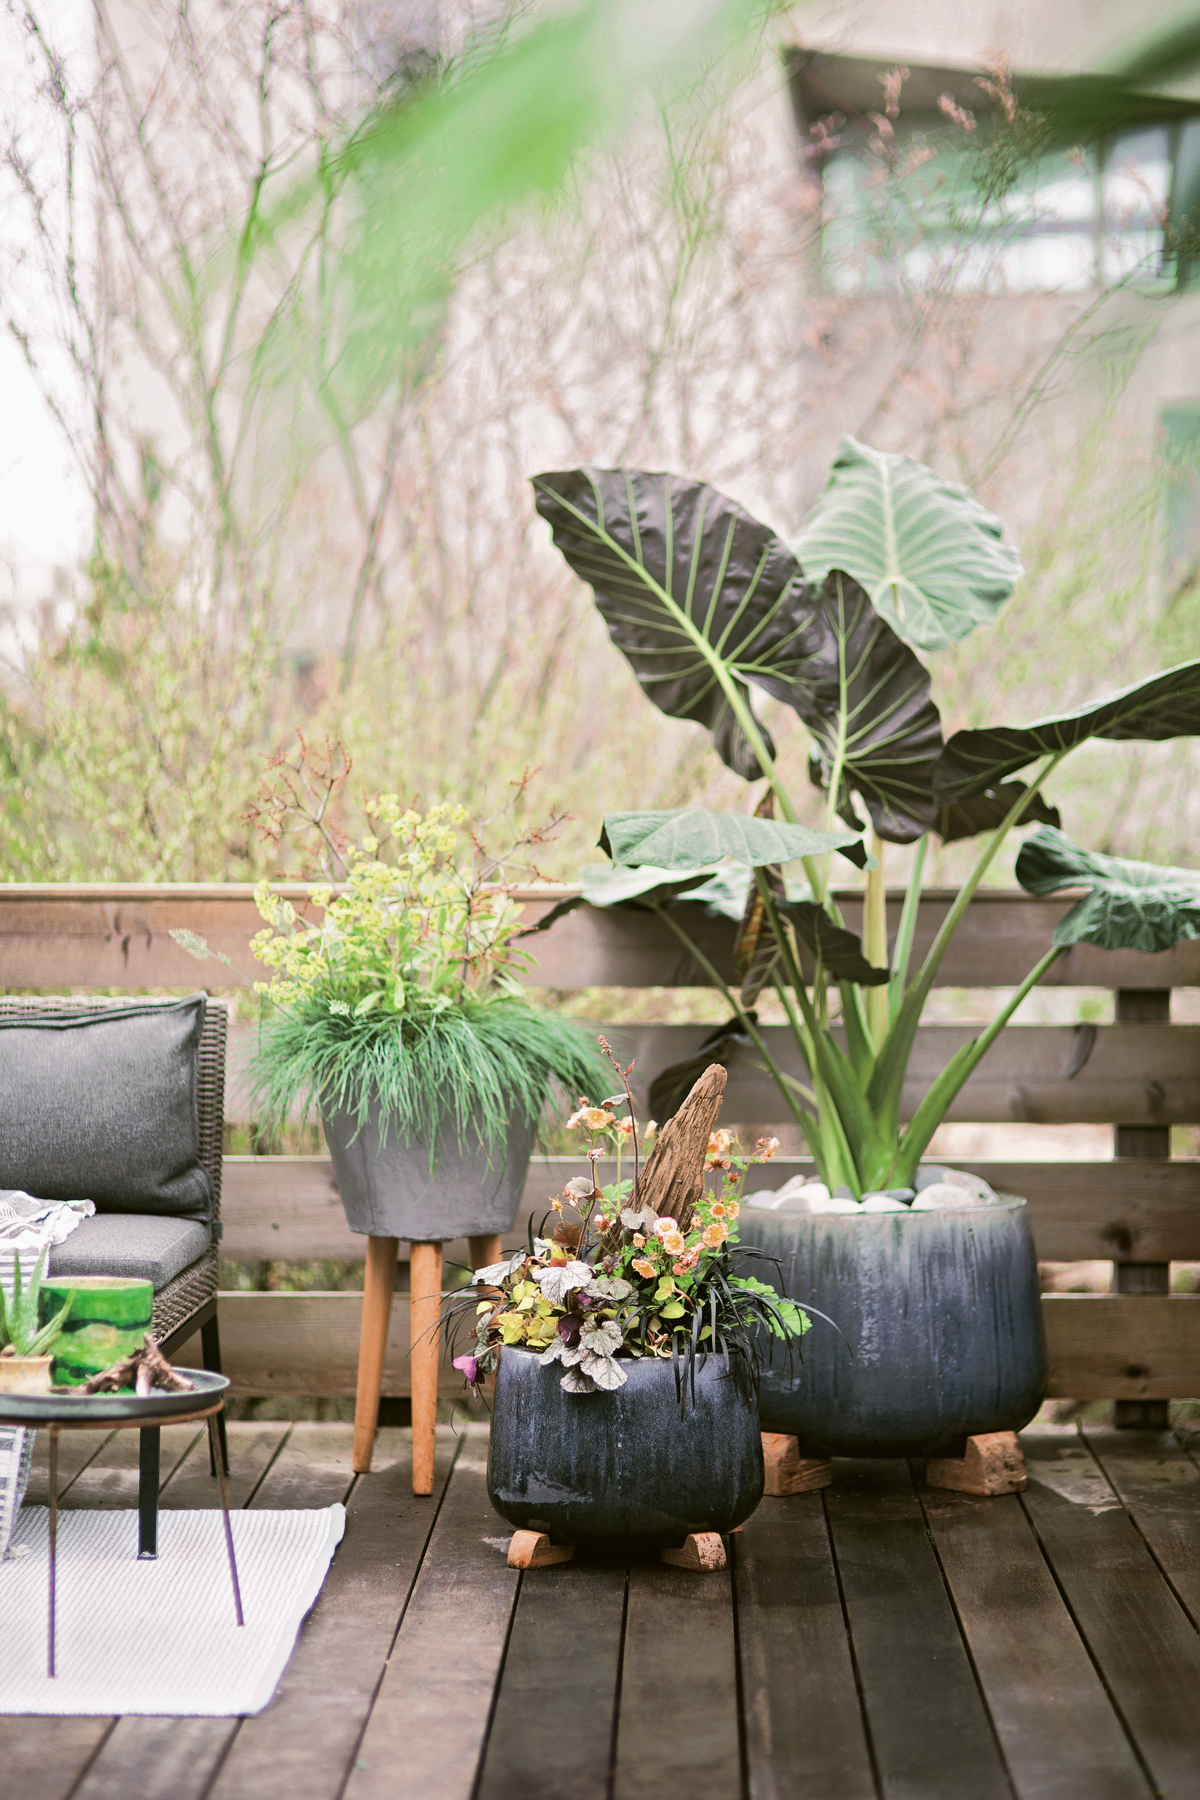 Container gardening ideas and tips - Terrain book excerpt